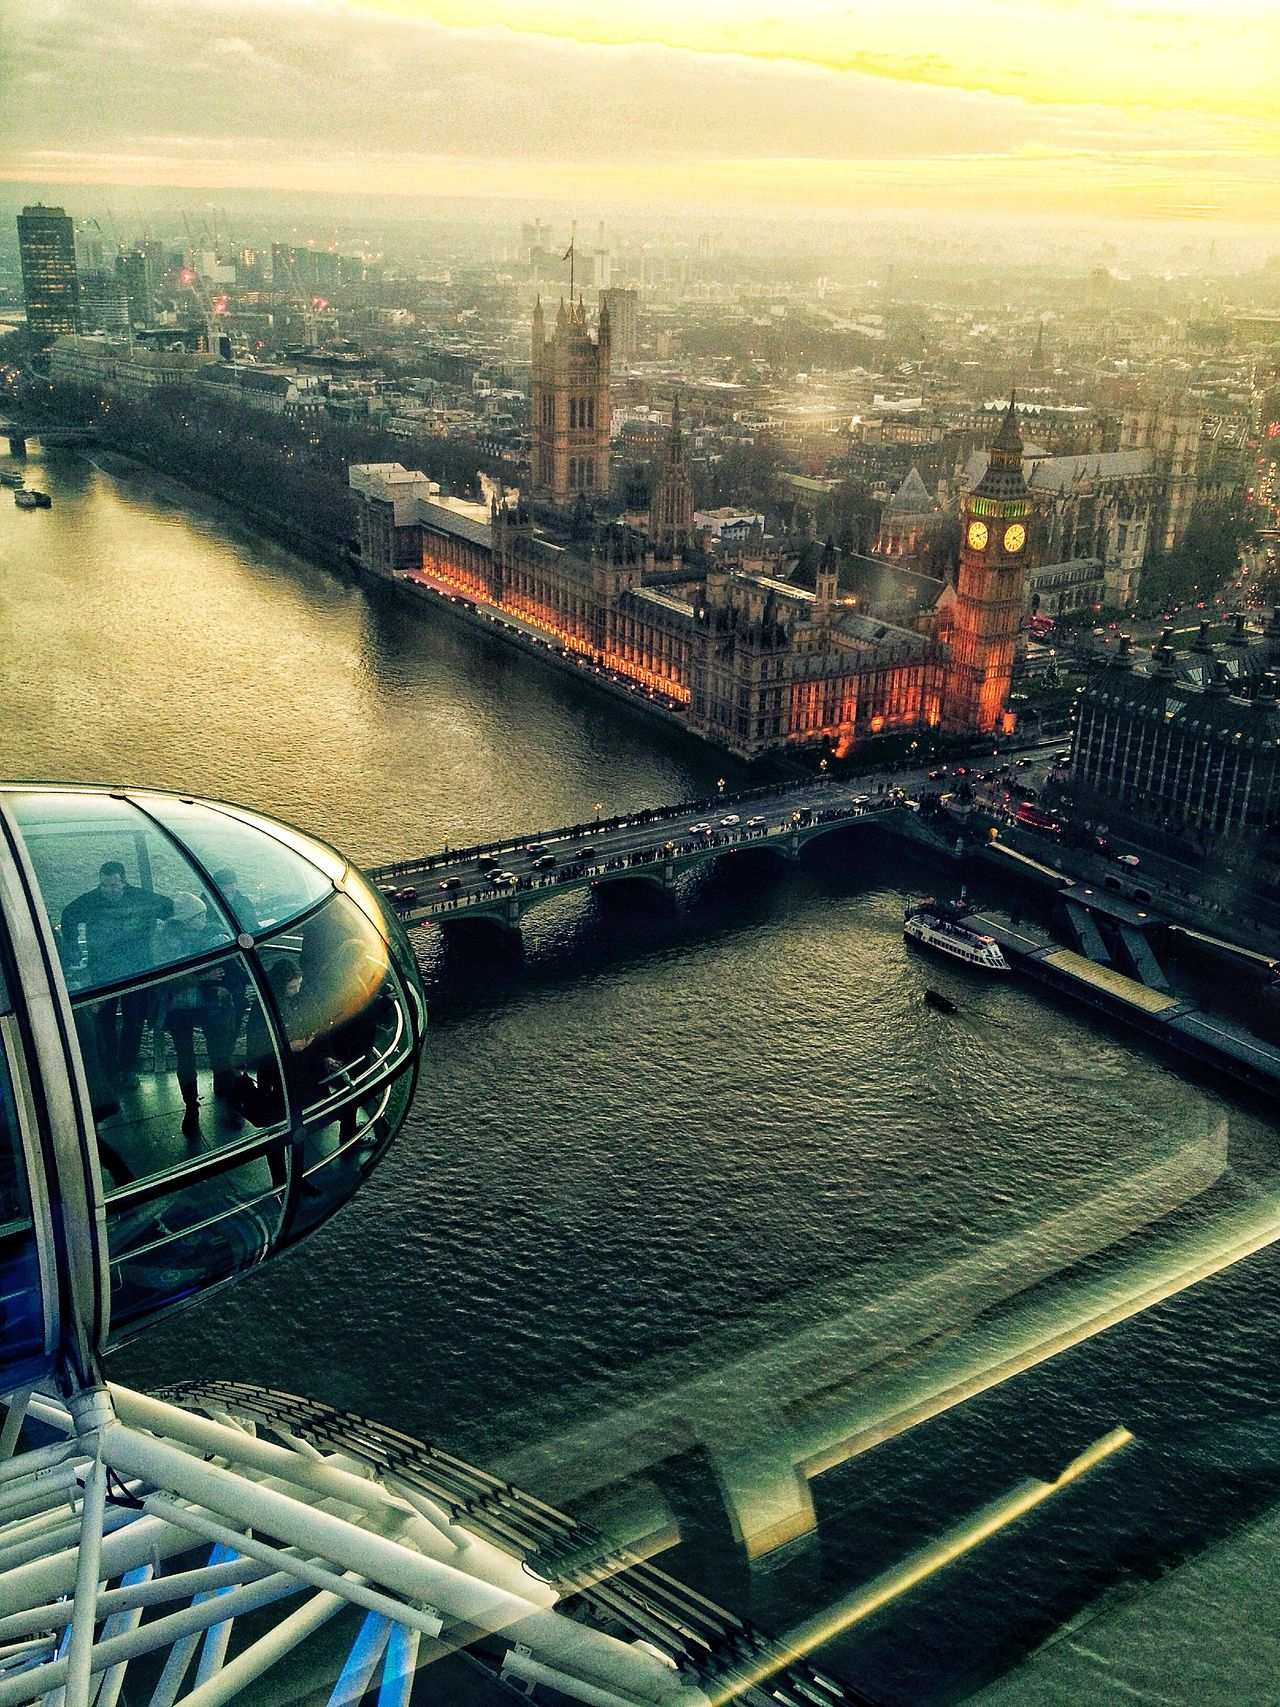 Big Ben From Londoneye Being A Tourist Sightseeing Travelling The Human Condition I Love My City Capture The Moment Photos That Will Restore Your Faith In Humanity Seeing The Sights The Tourist Urban Spring Fever Photography In Motion Landscapes With WhiteWall Showing Imperfection